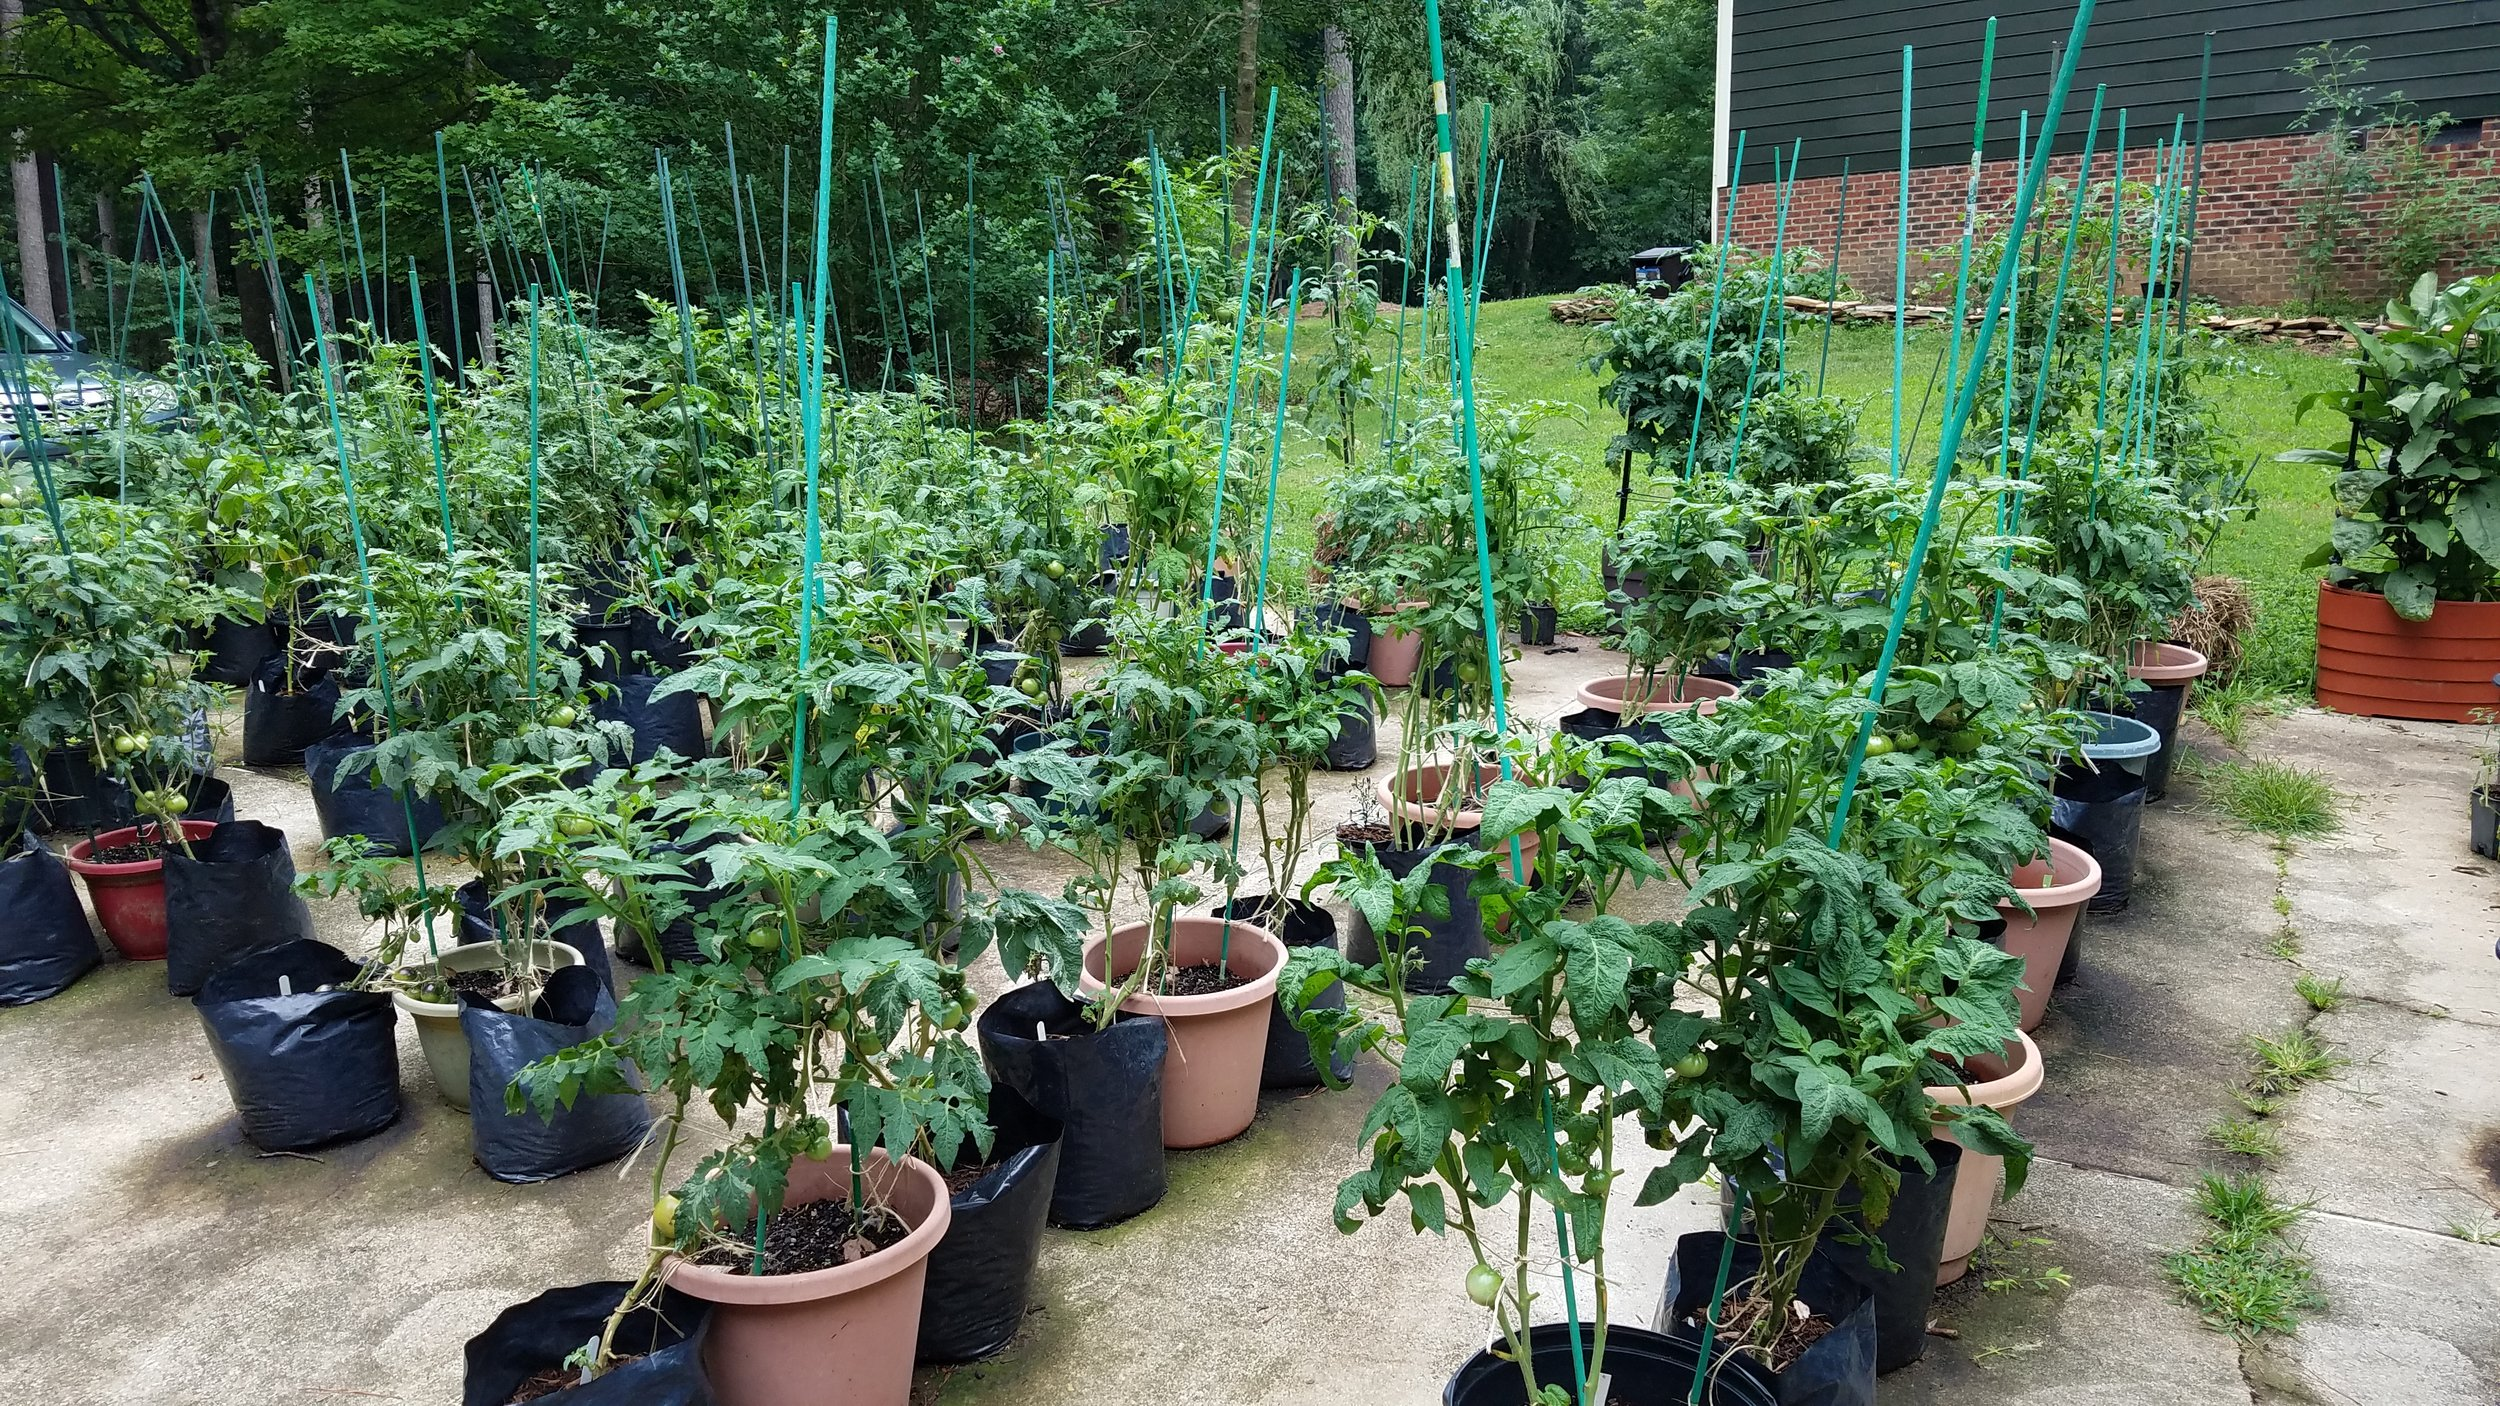 Two rows of the released dwarf tomatoes discussed in this blog